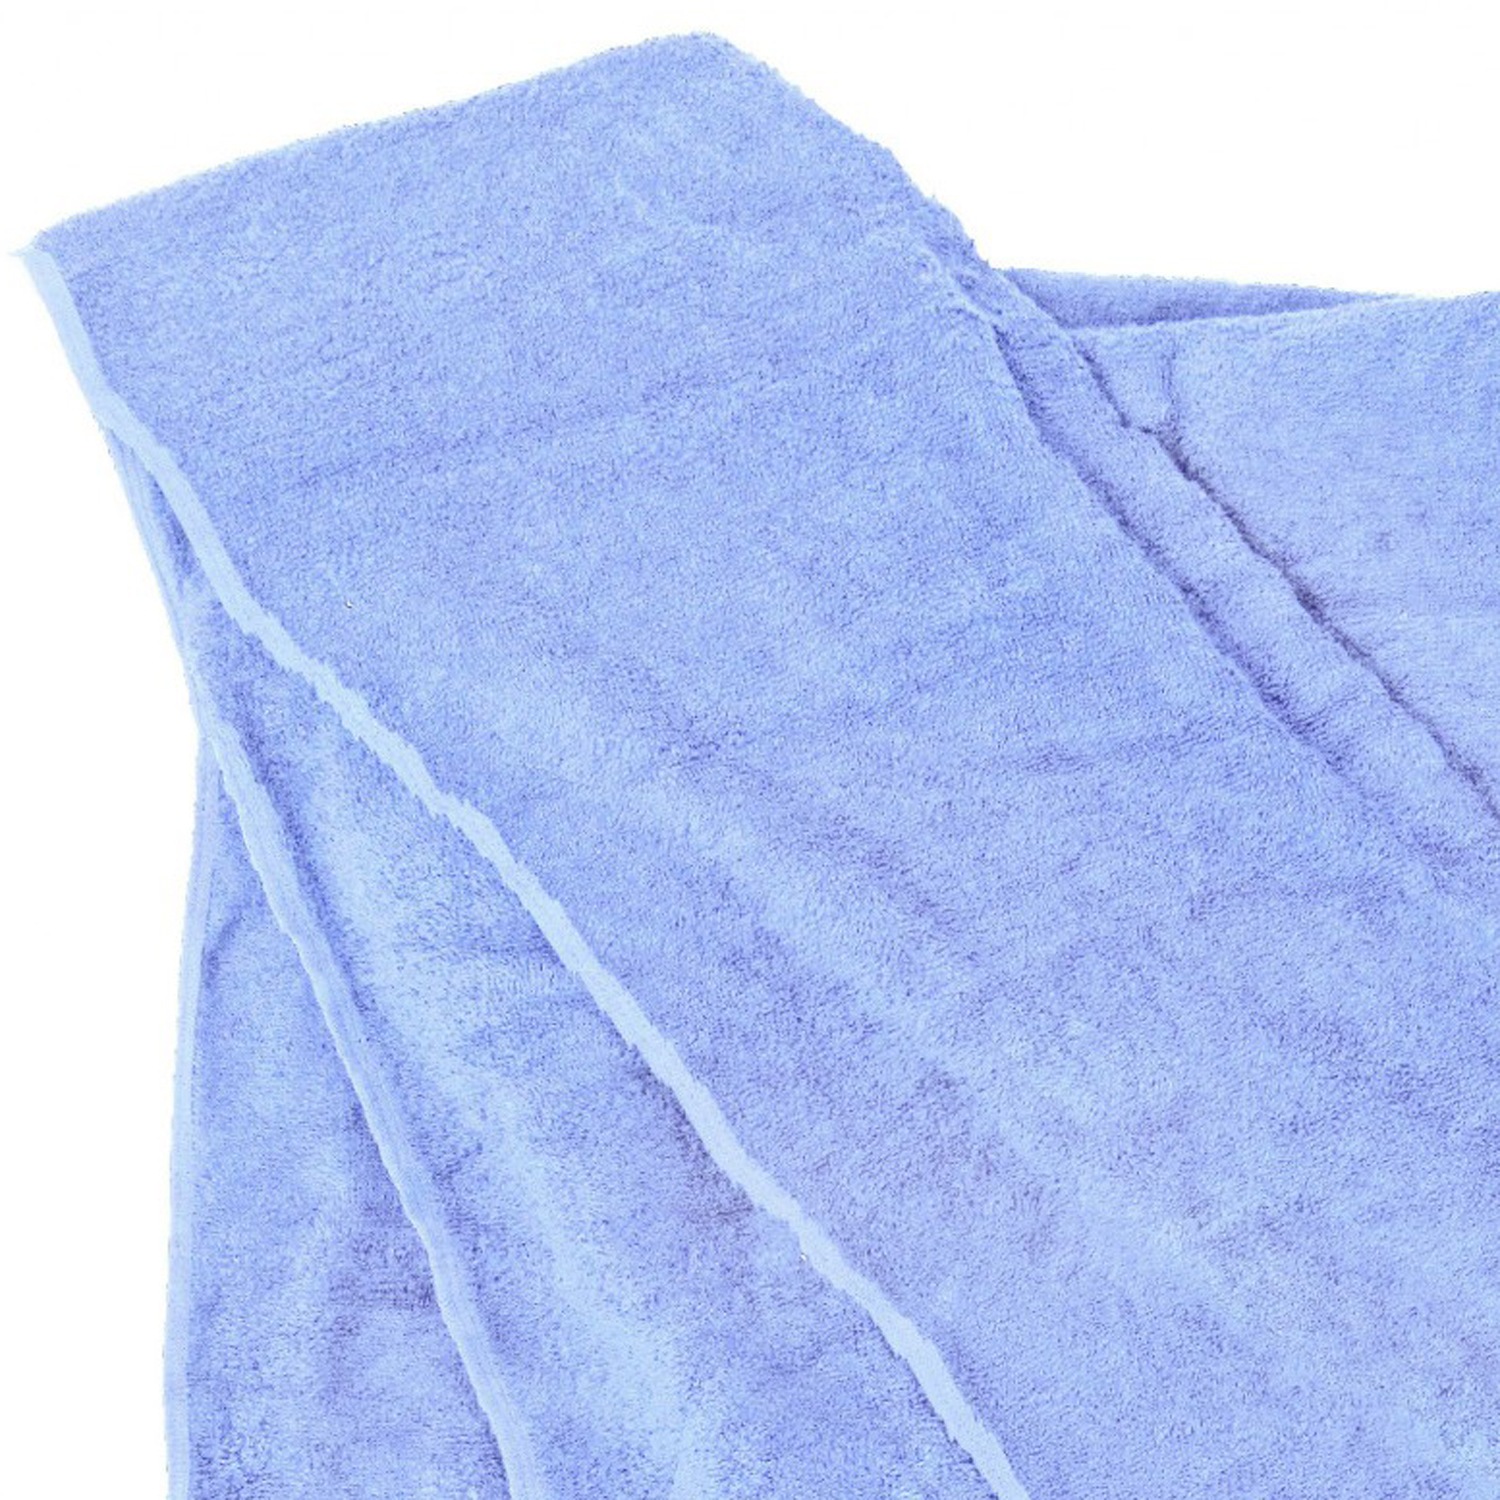 Detail Image to Bath towel in light blue by Kapart in large sizes 100x220 cm and 155x220 cm